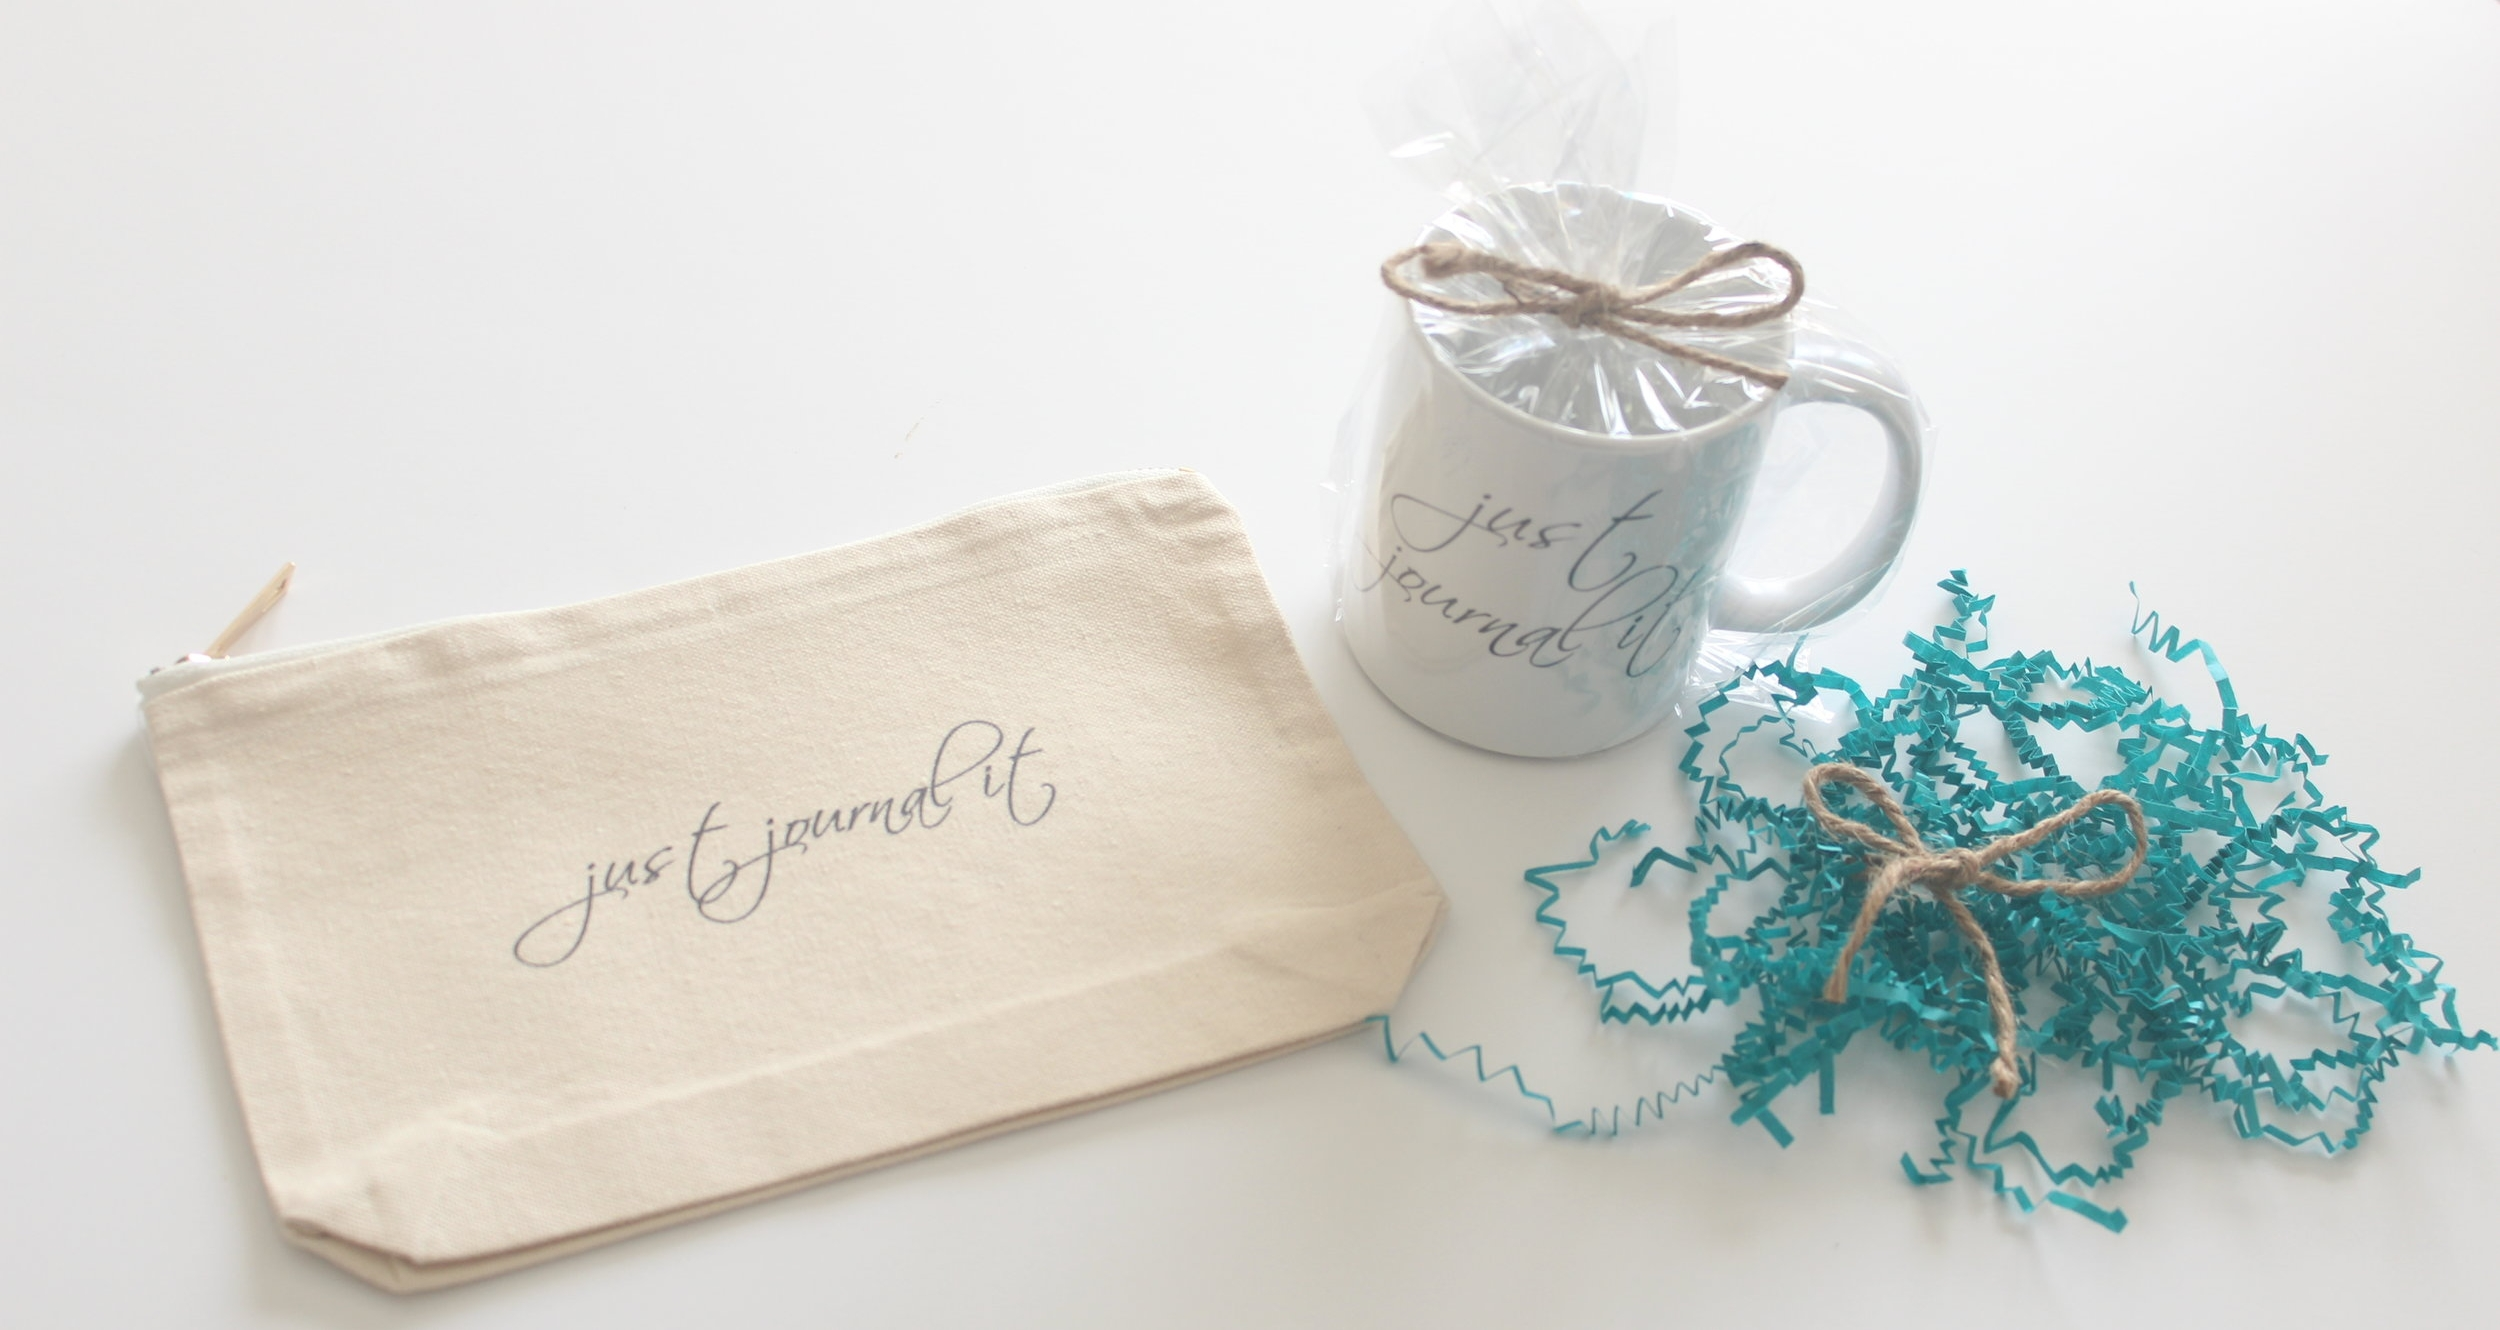 pen pouch and just journal it mug